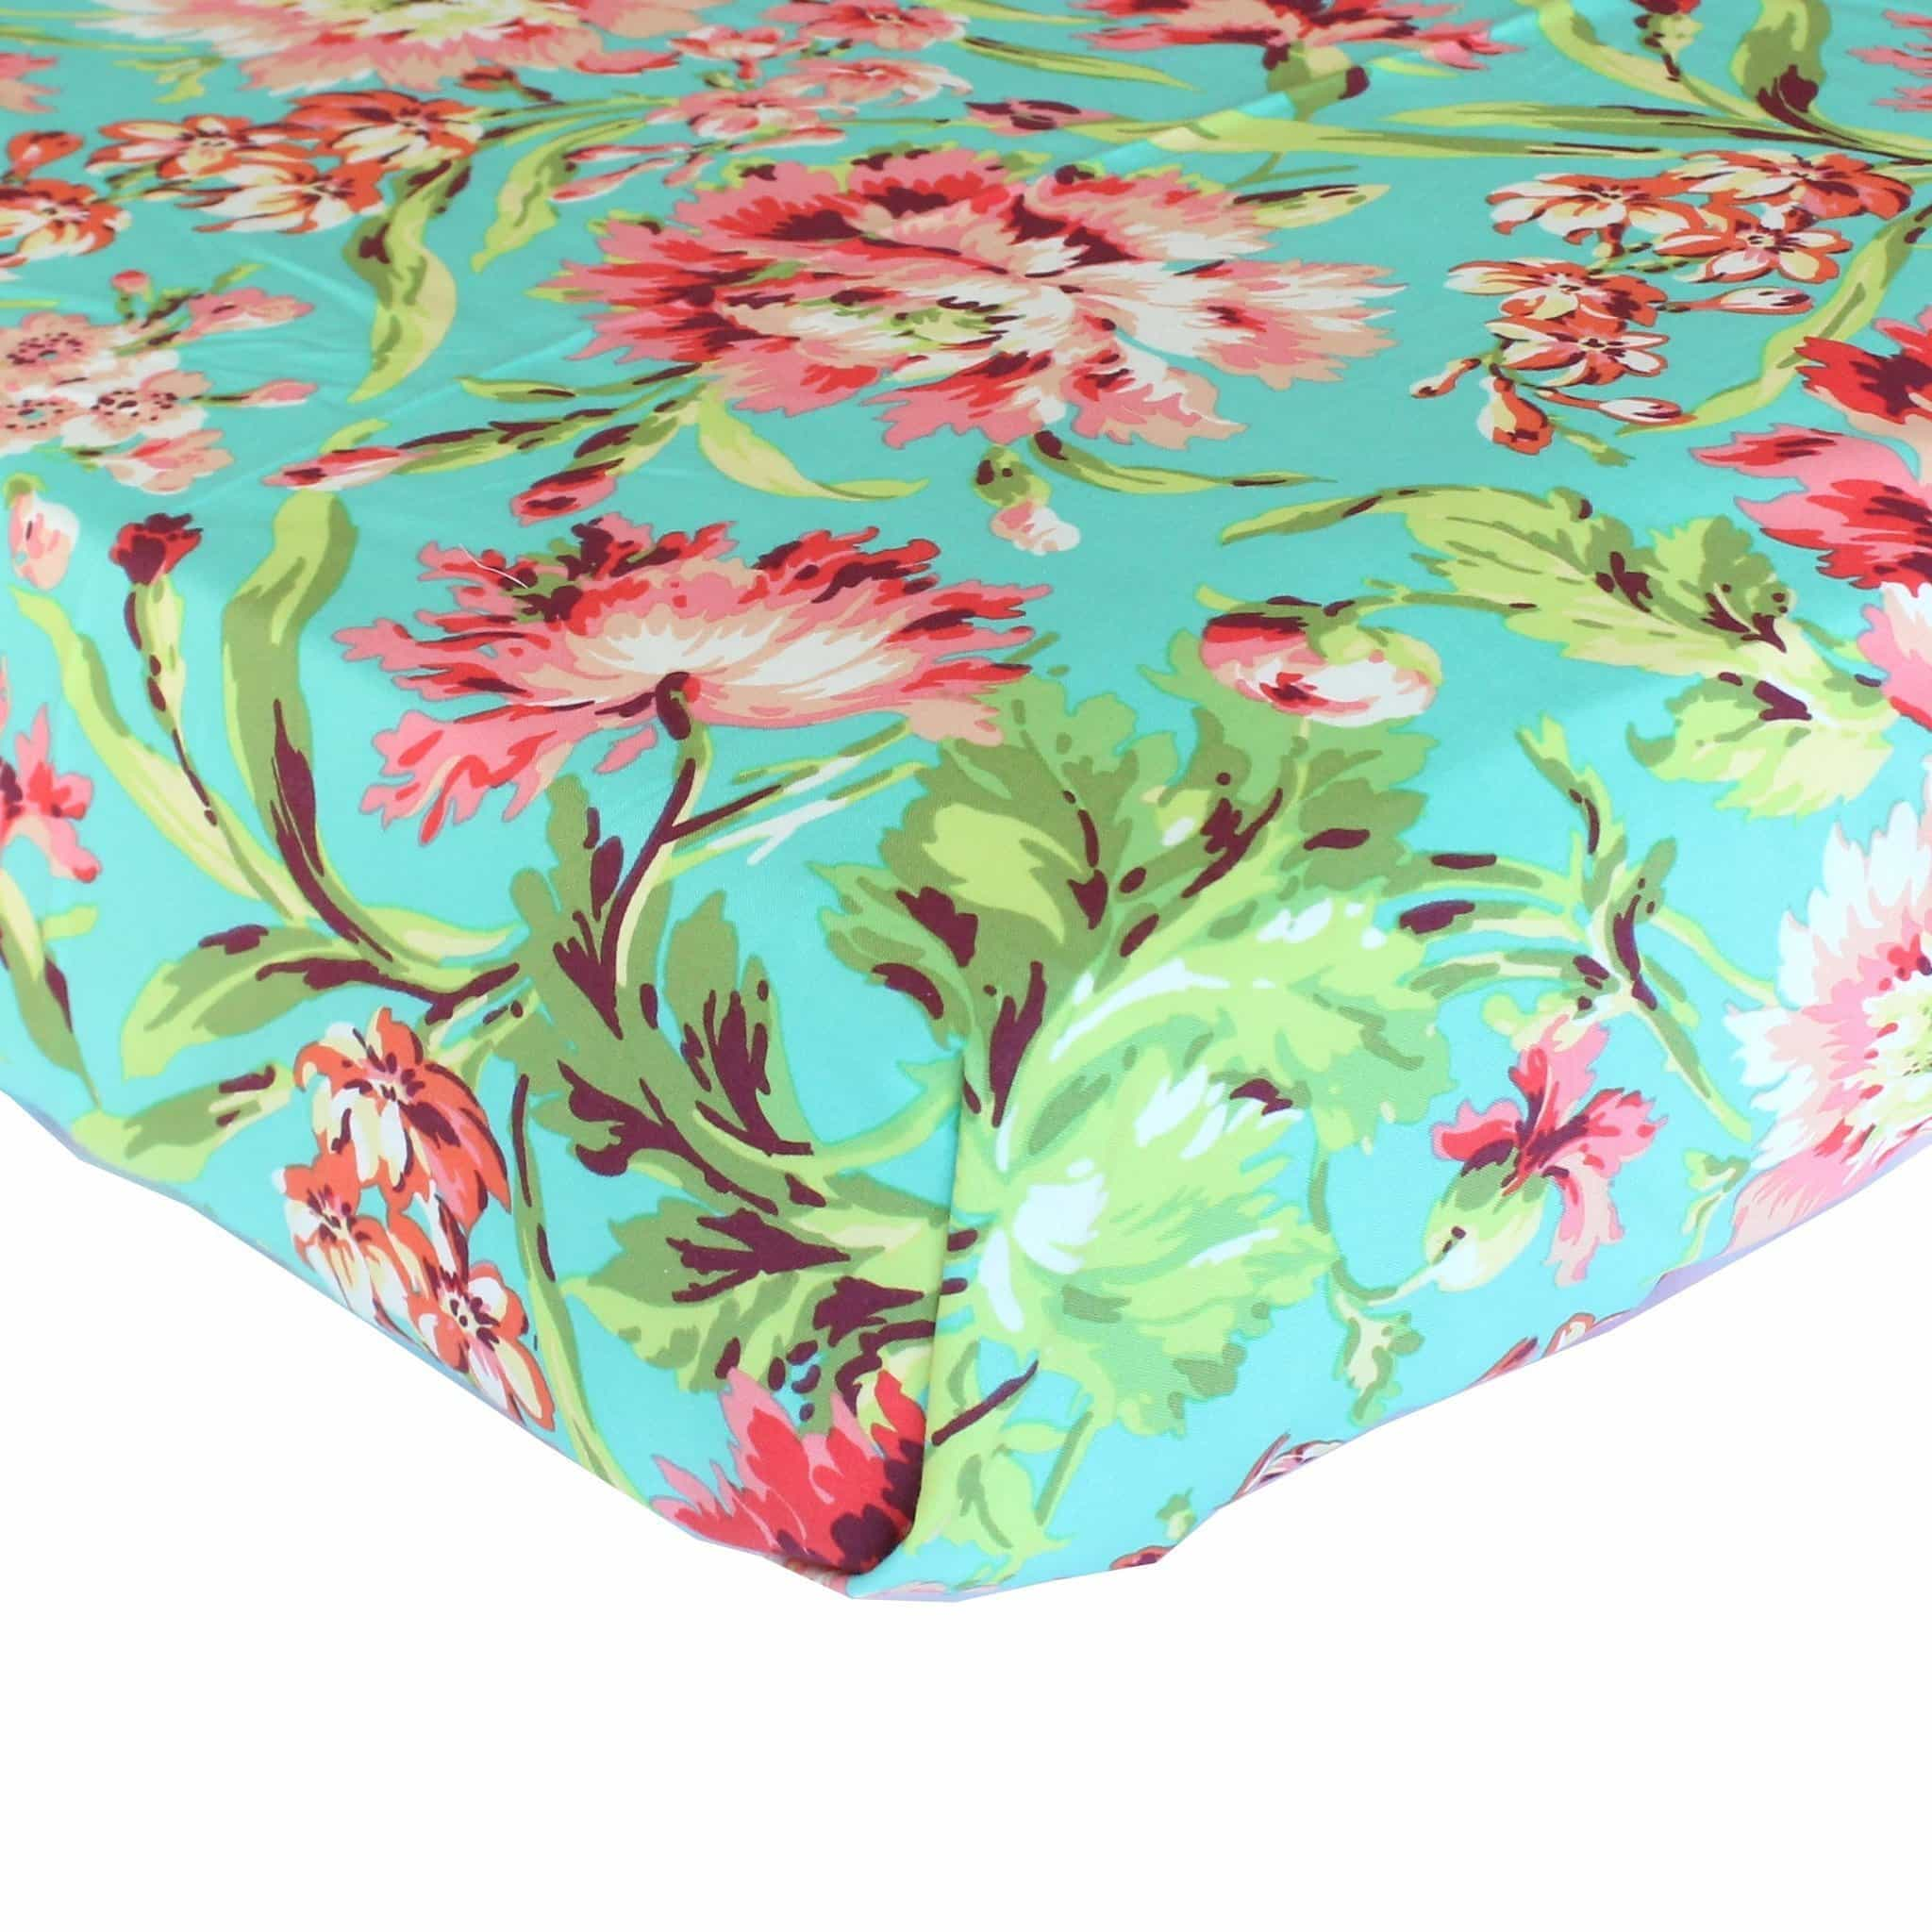 Fitted Crib Sheets | Love Bliss Bouquet - Coral and Teal-Crib Sheets-Bold Bedding-Jack and Jill Boutique